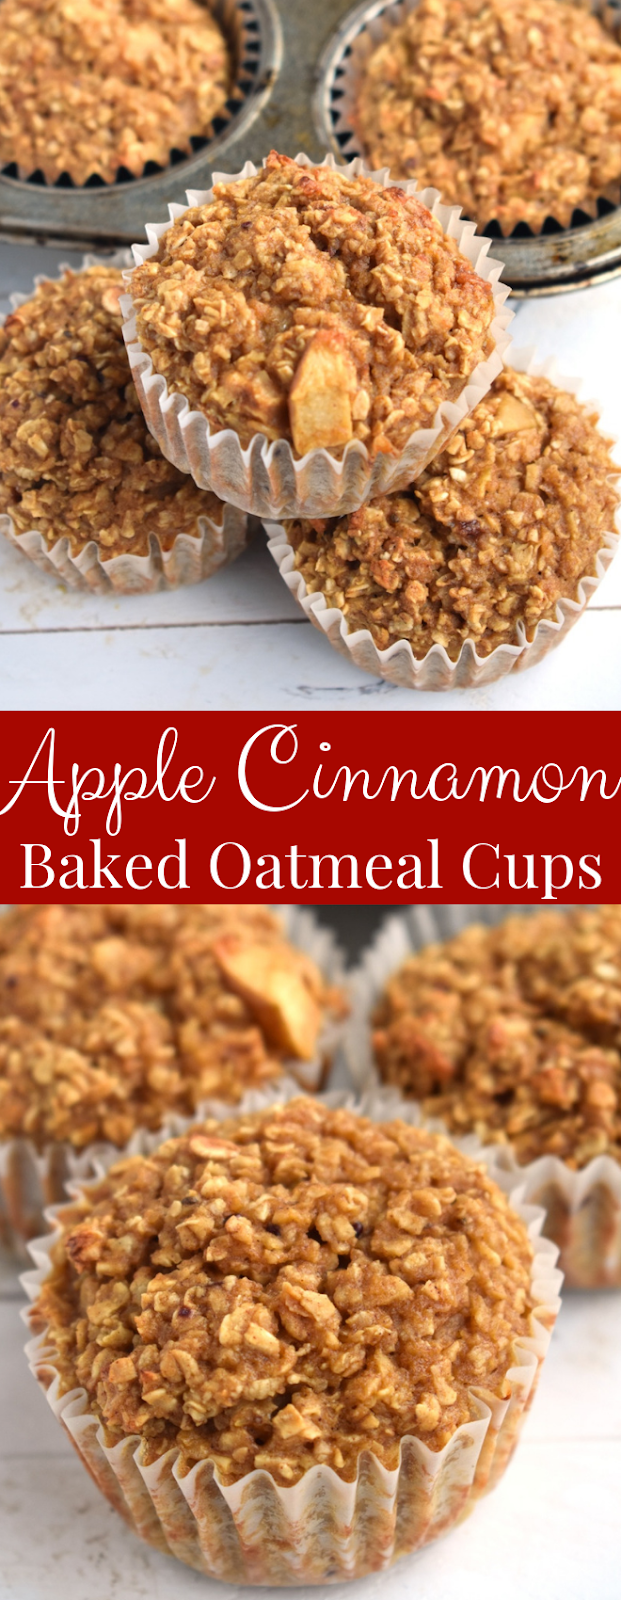 Apple Cinnamon Baked Oatmeal Cups recipe